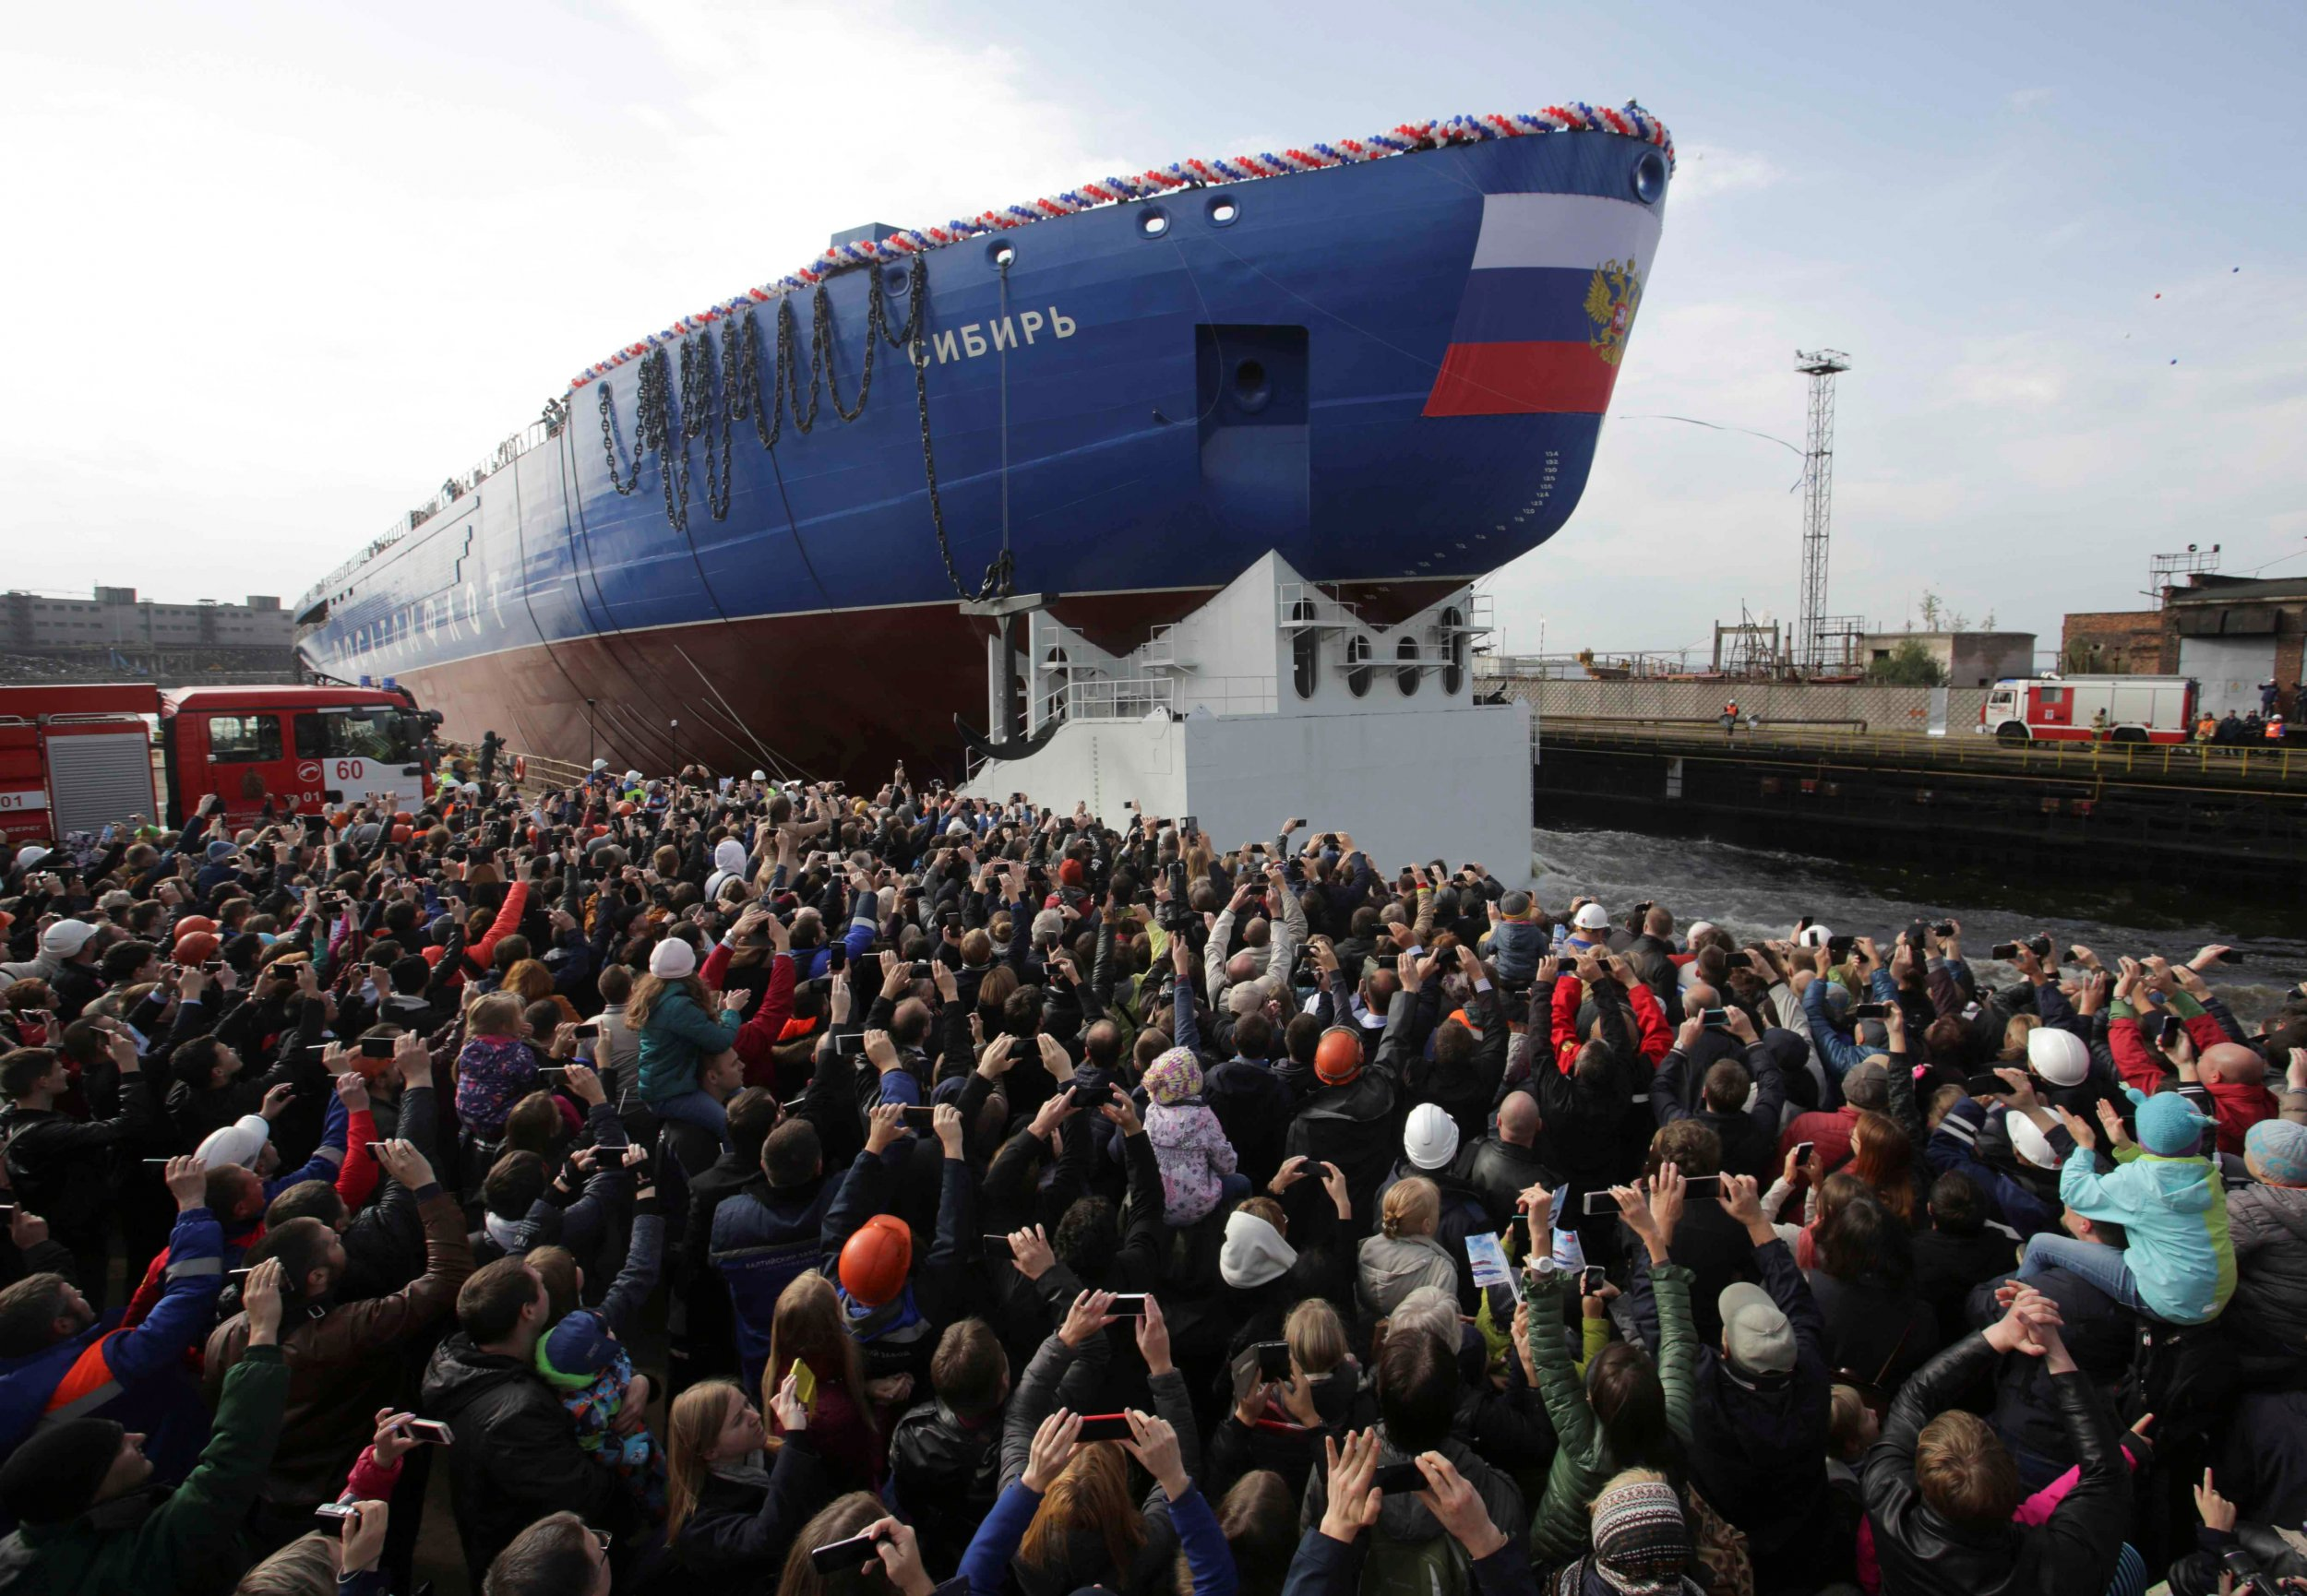 Russia Leads World With New Nuclear Icebreaker Ship, Putin's